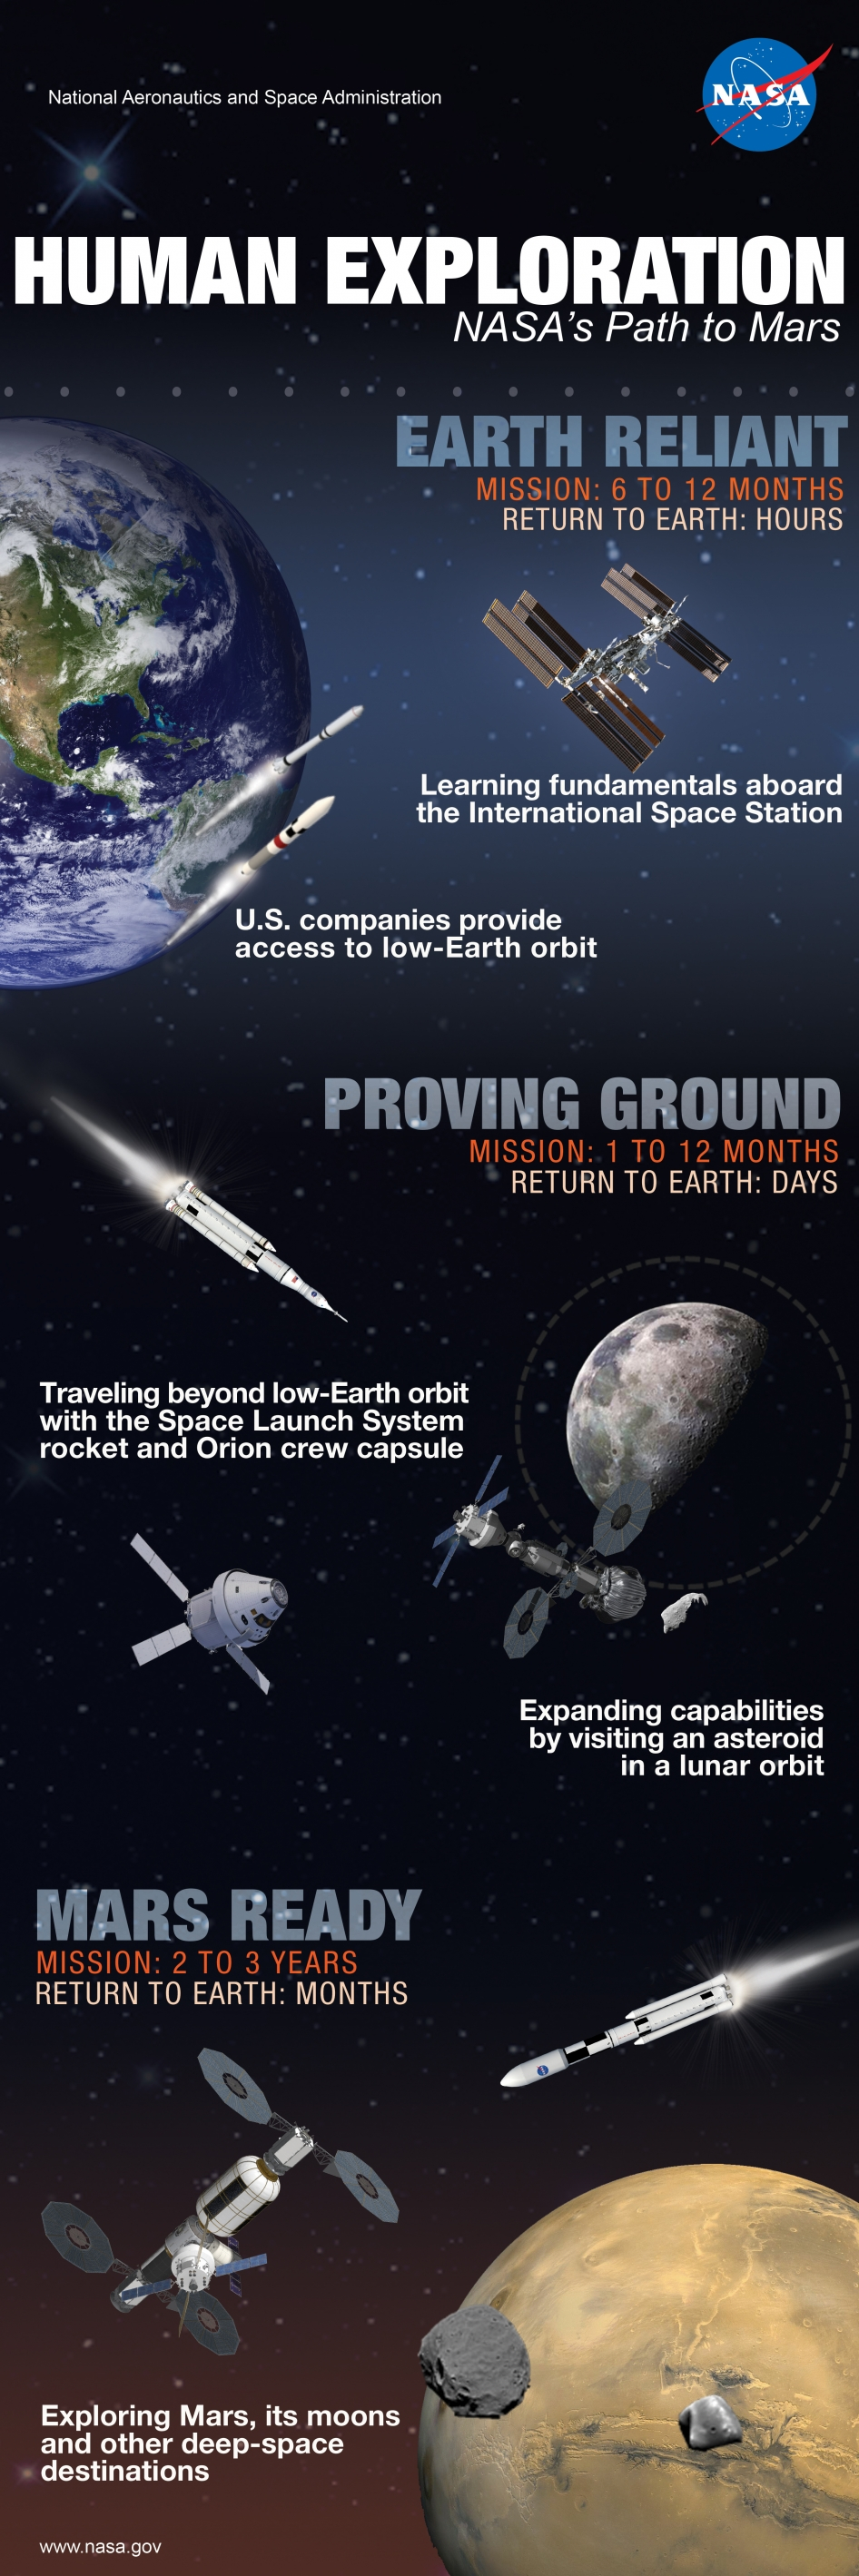 Human Space Exploration: NASA's Building Blocks to Mars | NASA